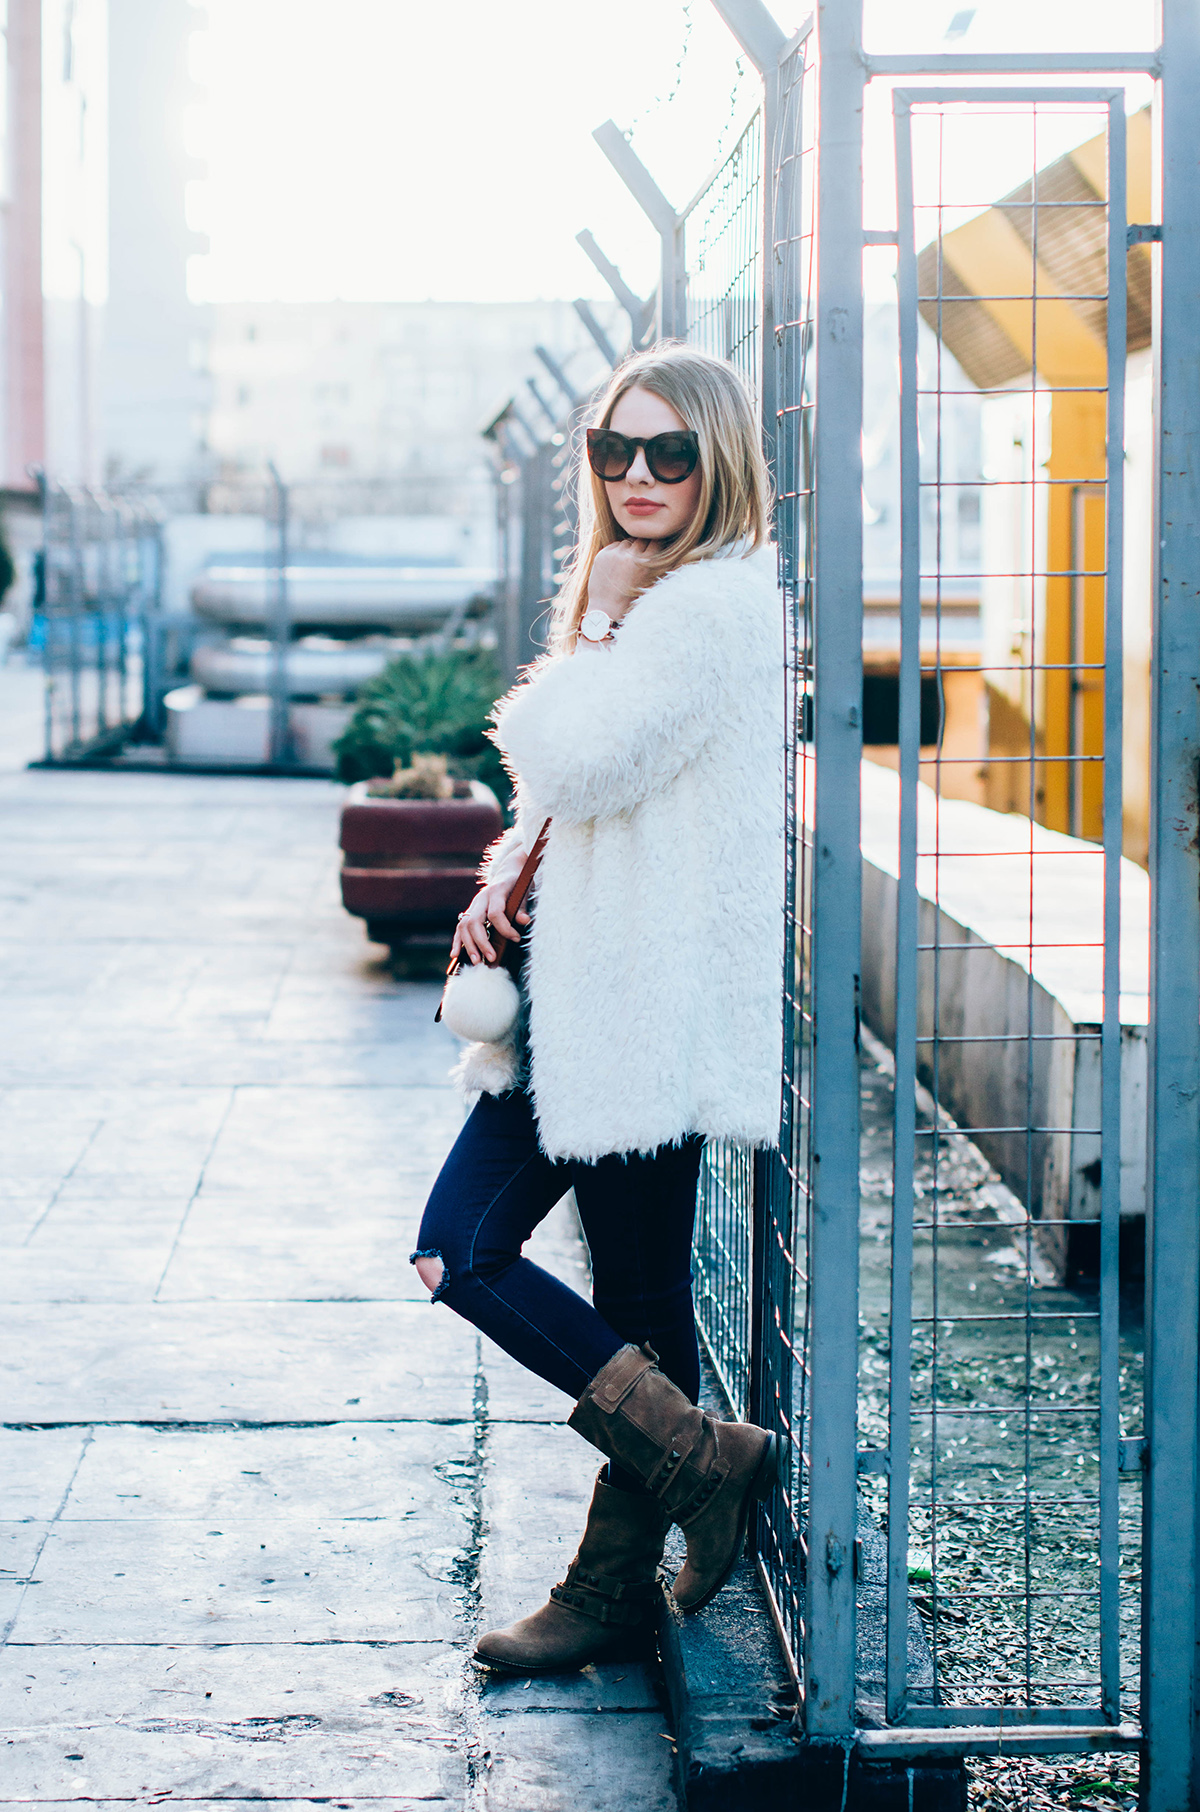 white-fluffy-cardgan-ripped-skinny-jeans-suede-boots-camel-scarf-fluffy-keyrng-cat-eye-sunglasses (10)